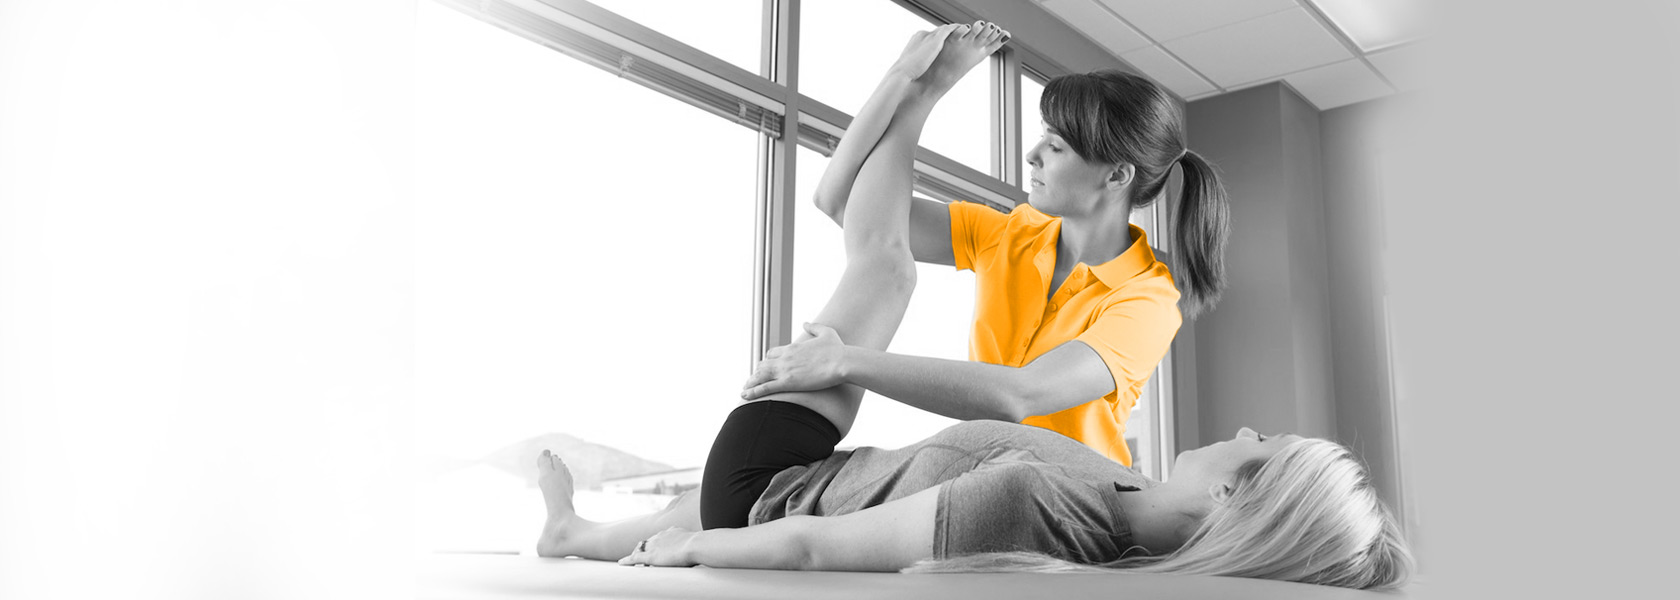 Post Operation physiotherapy in Canberra